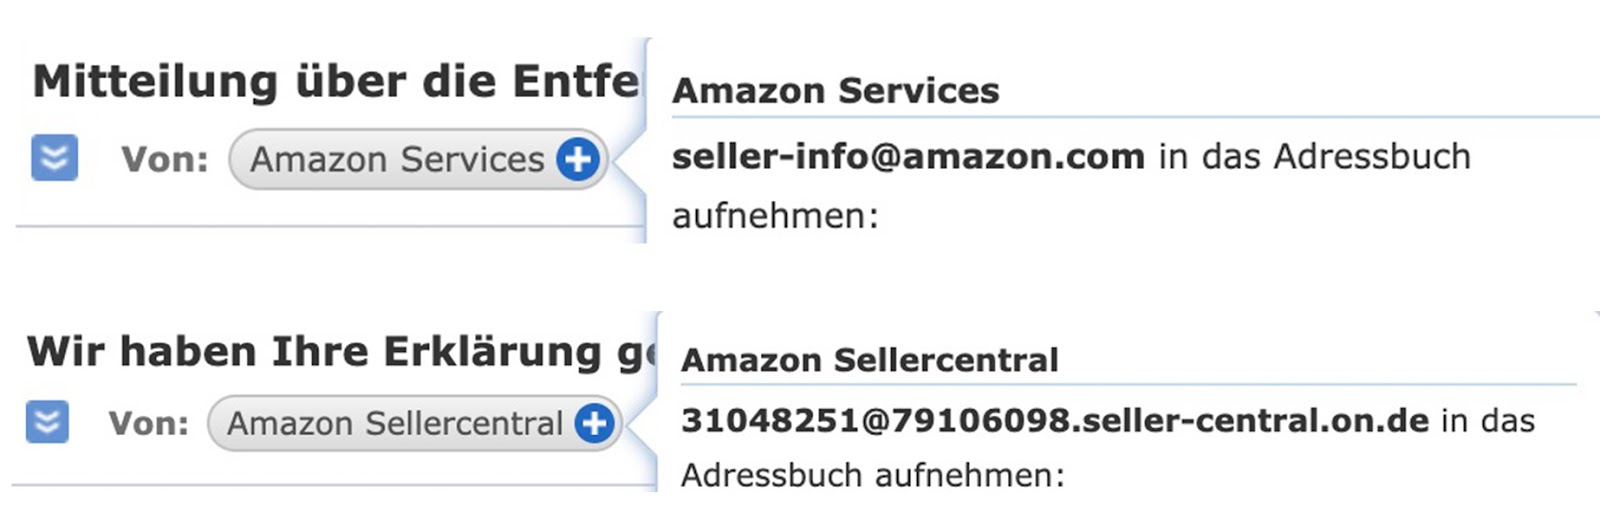 Amazon Sellercentral Email